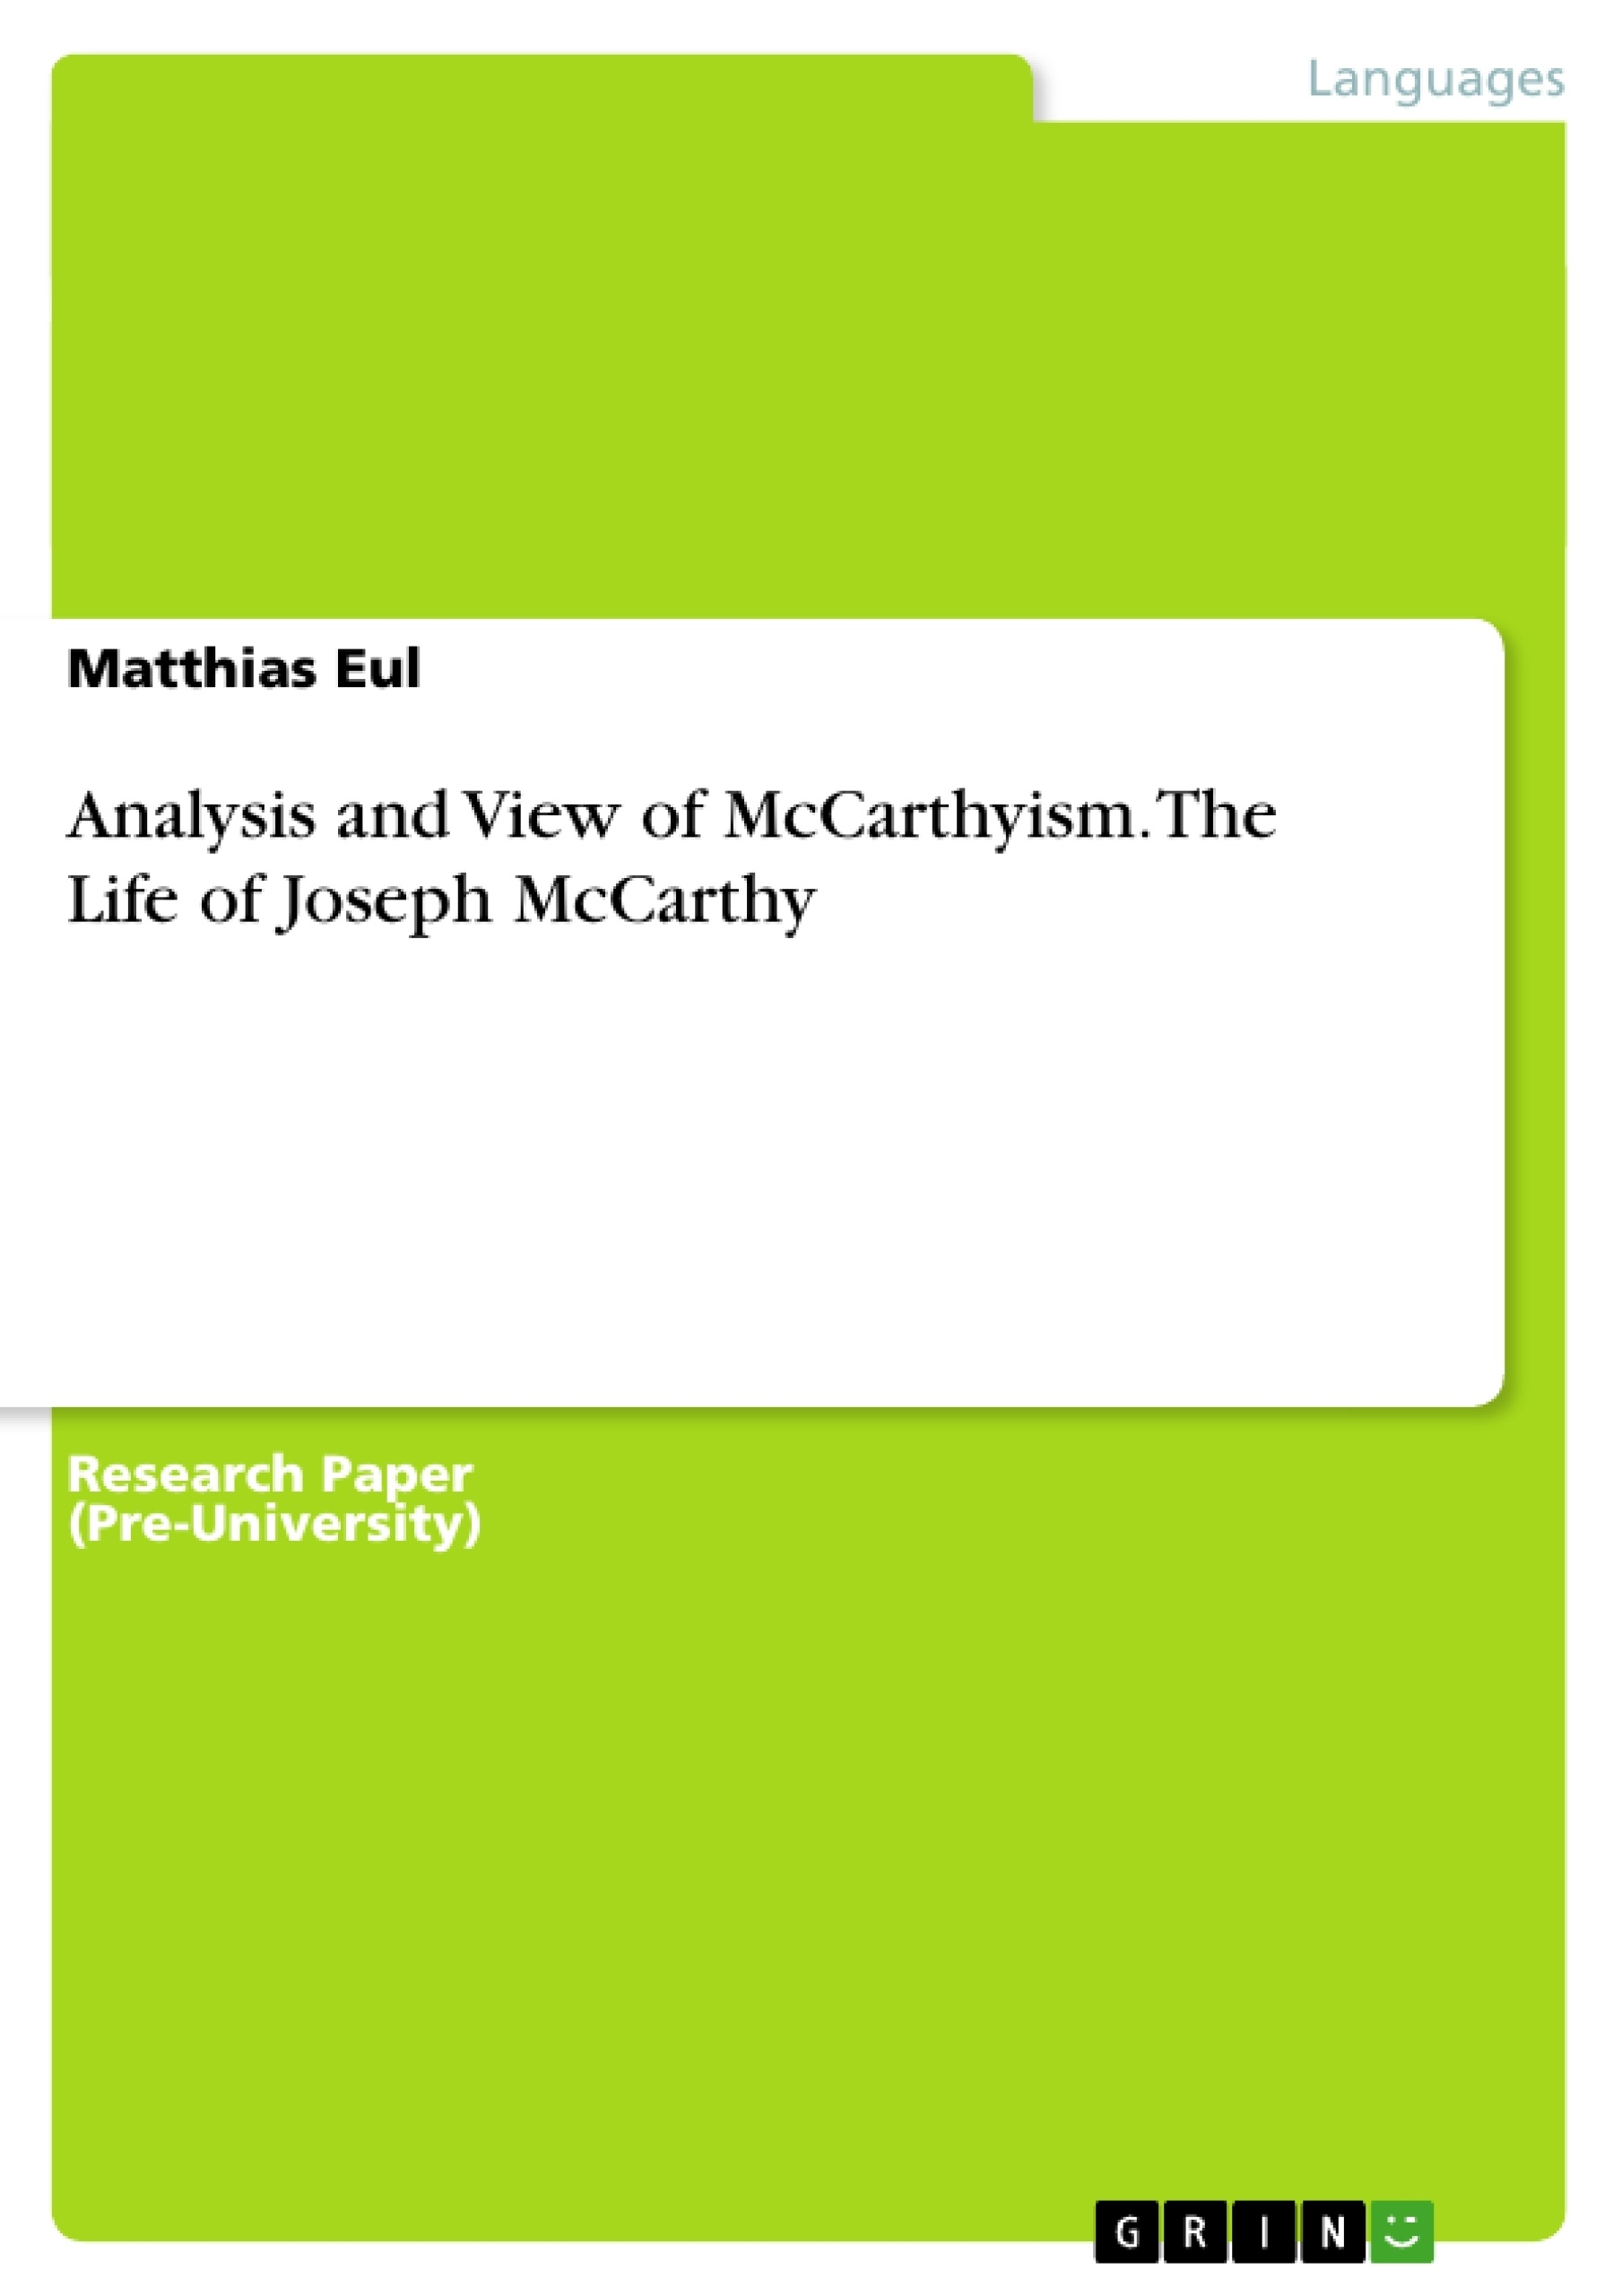 analysis and view of mccarthyism the life of joseph mccarthy upload your own papers earn money and win an iphone 7